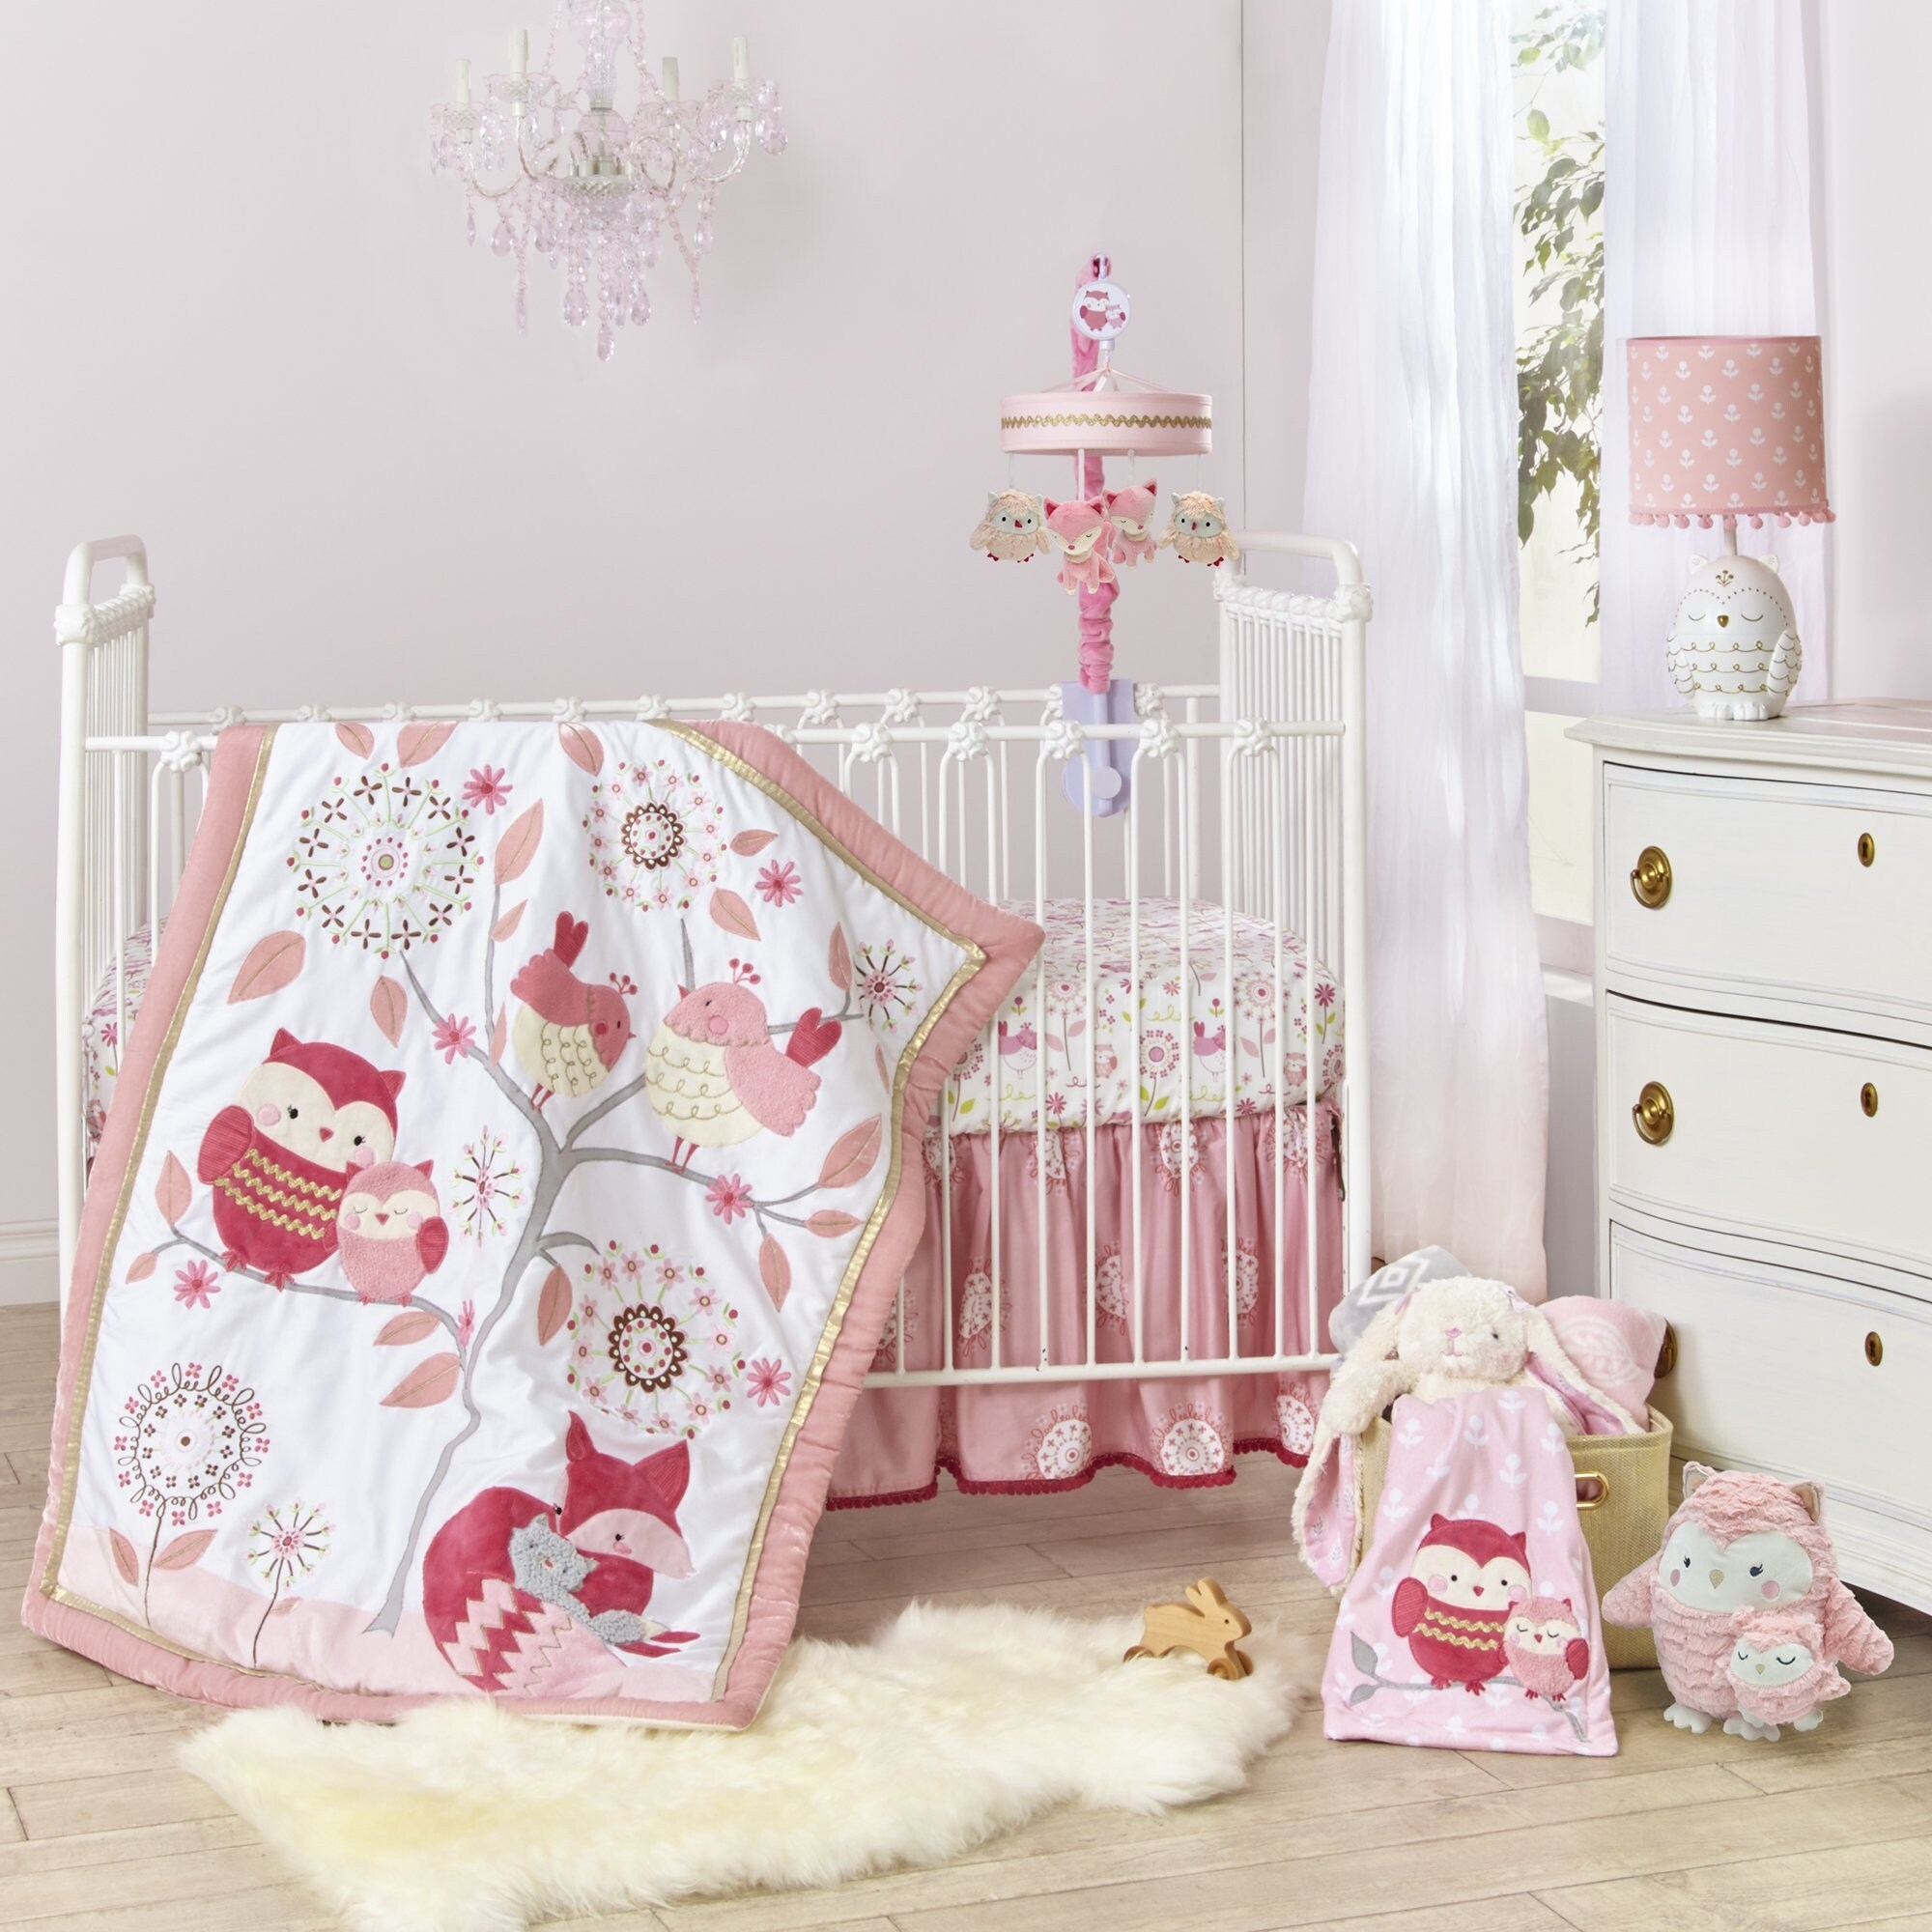 Lambs & Ivy Woodland Couture Pink/White Owl, Birds & Fox with Tree Nursery  3-Piece Baby Crib Bedding Set